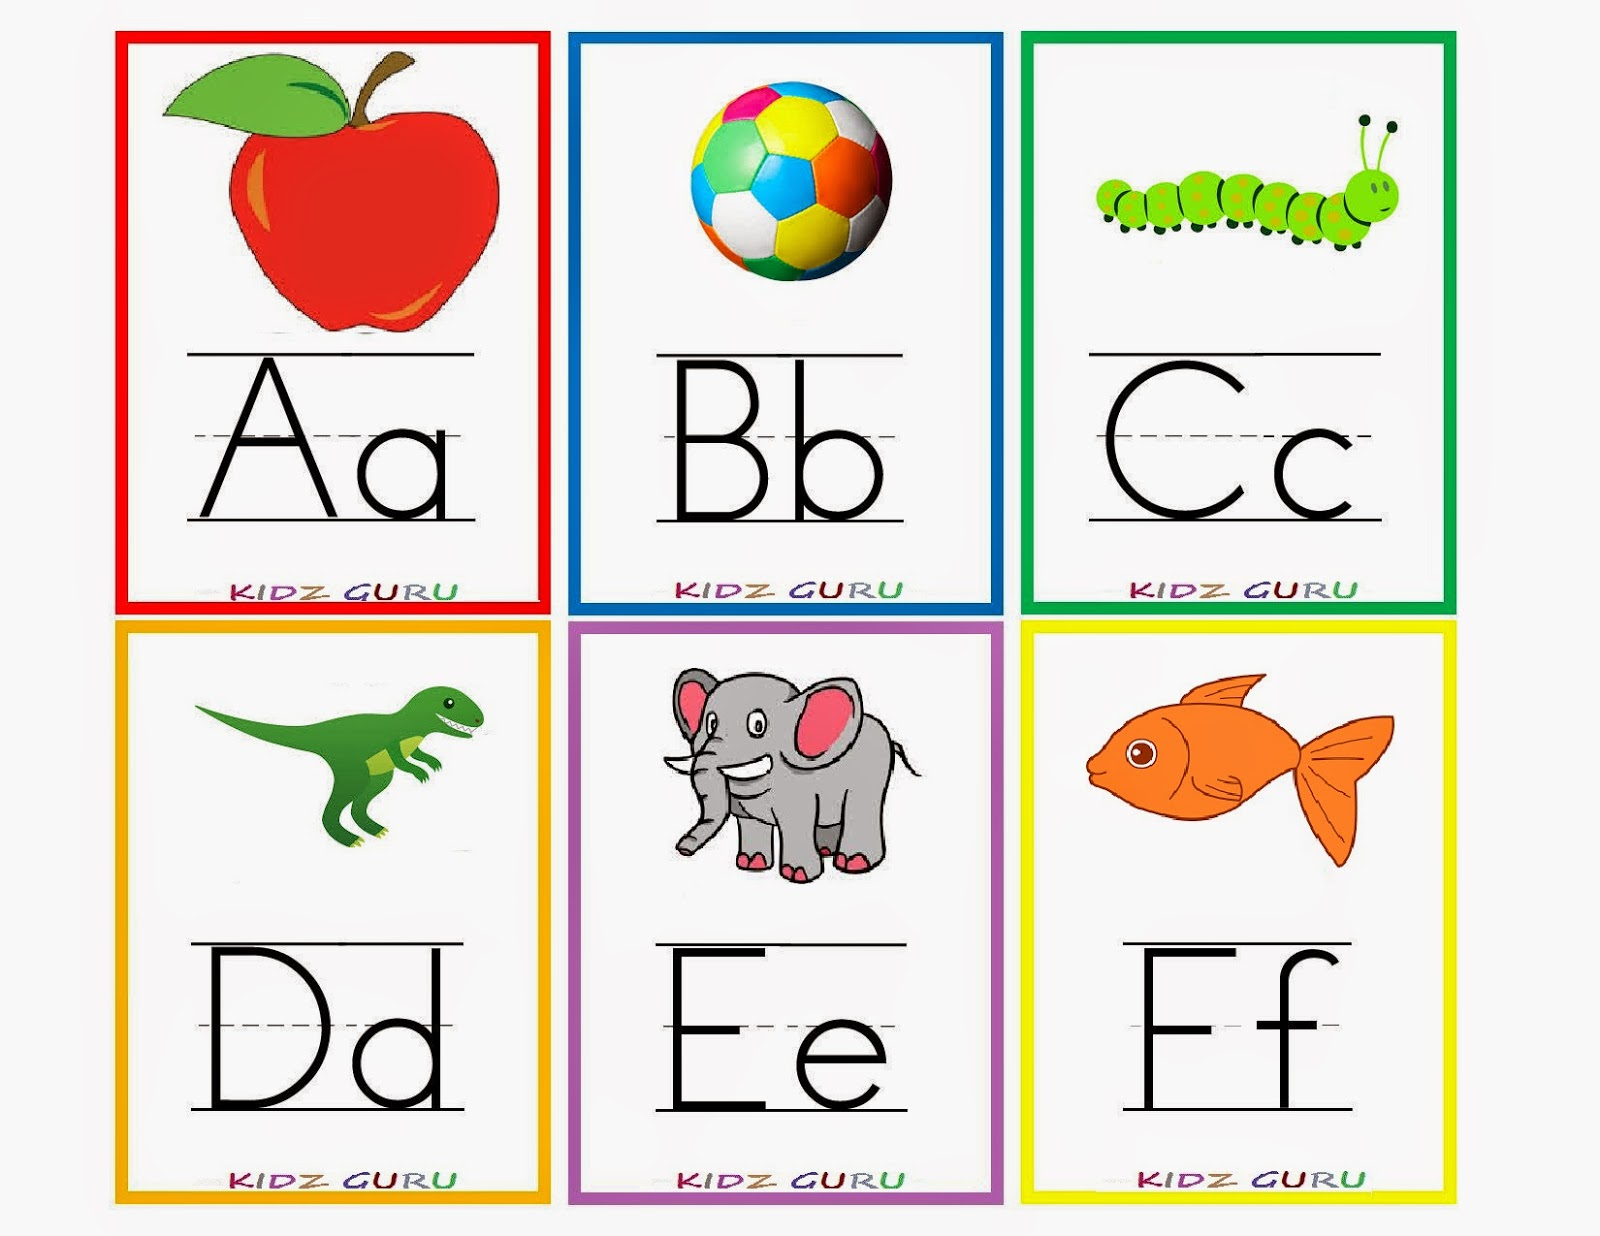 Worksheets Alphabets For Kindergarten kindergarten worksheets printable alphabet flash cards